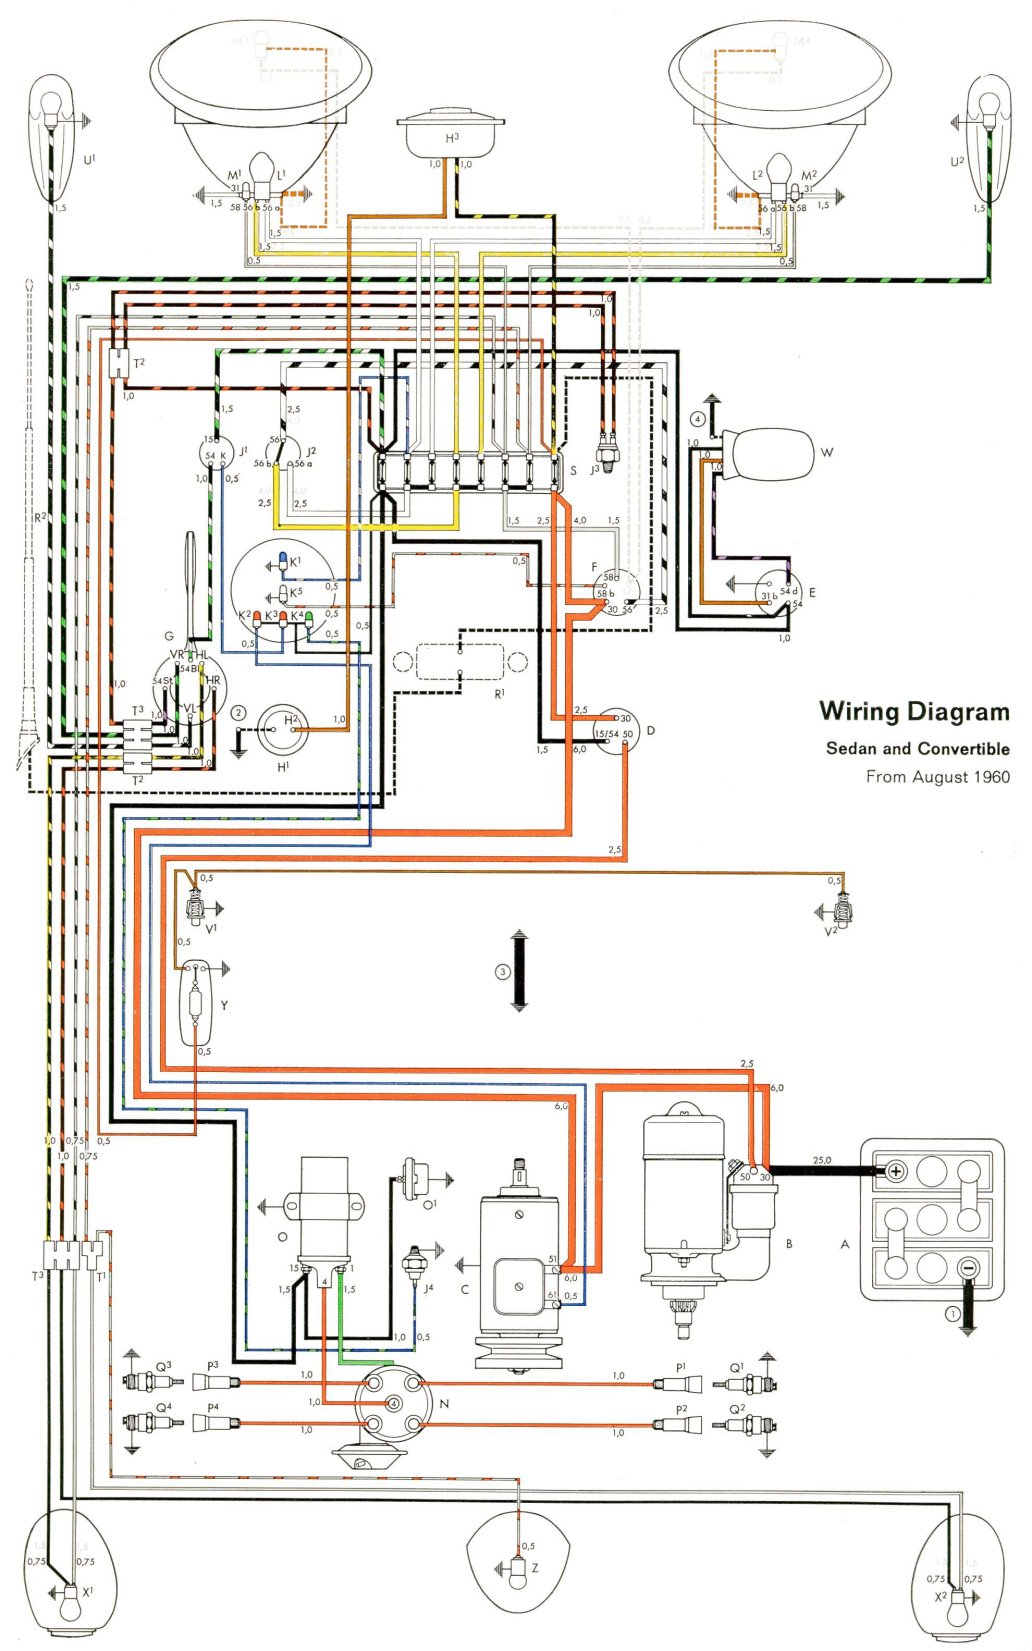 bug_61 1961 beetle wiring diagram thegoldenbug com volkswagen wiring diagrams at readyjetset.co